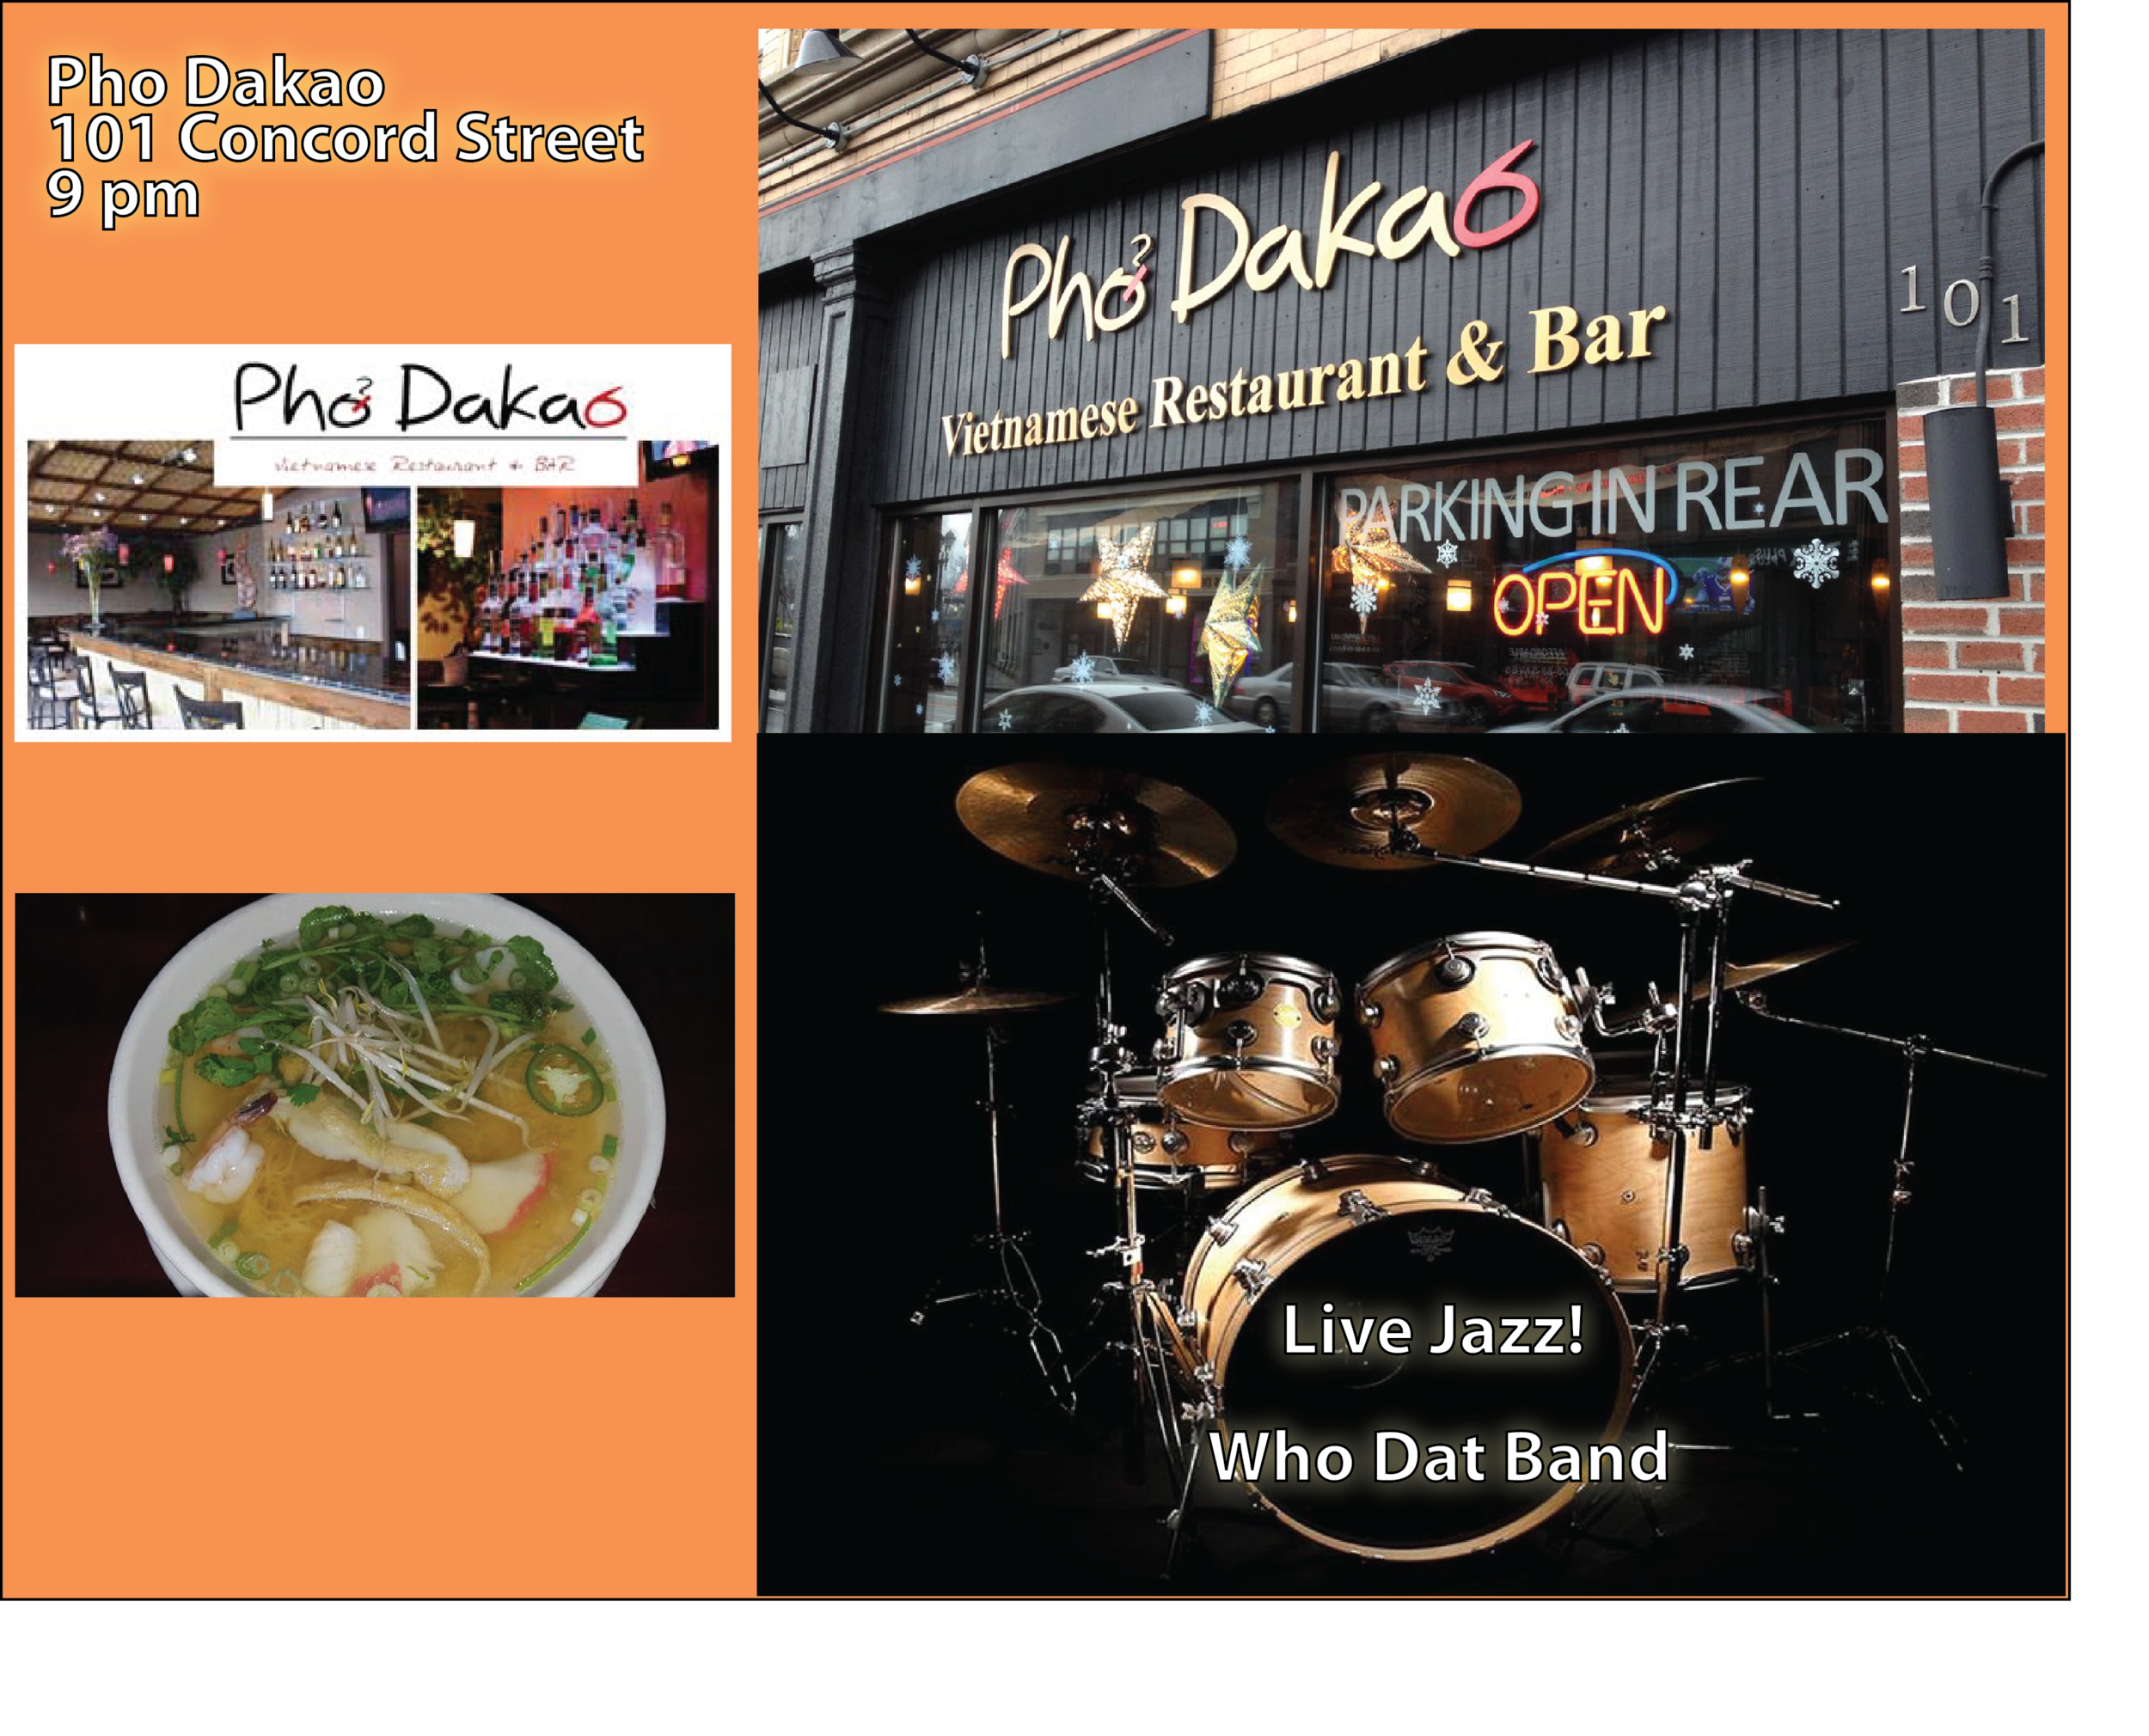 Pho Dakao - 101 Concord StreetDiscount:  15% off your meal (dine-in only & restaurant week must be mentioned to server)Parking Directions                            Heading South on Rt 126: Right on Park Street, Left on Franklin Street, Left into Howard/Concord Streets Lot Heading North on Rt 126: Right on Howard Street, Left into Howard/Concord Streets Lot